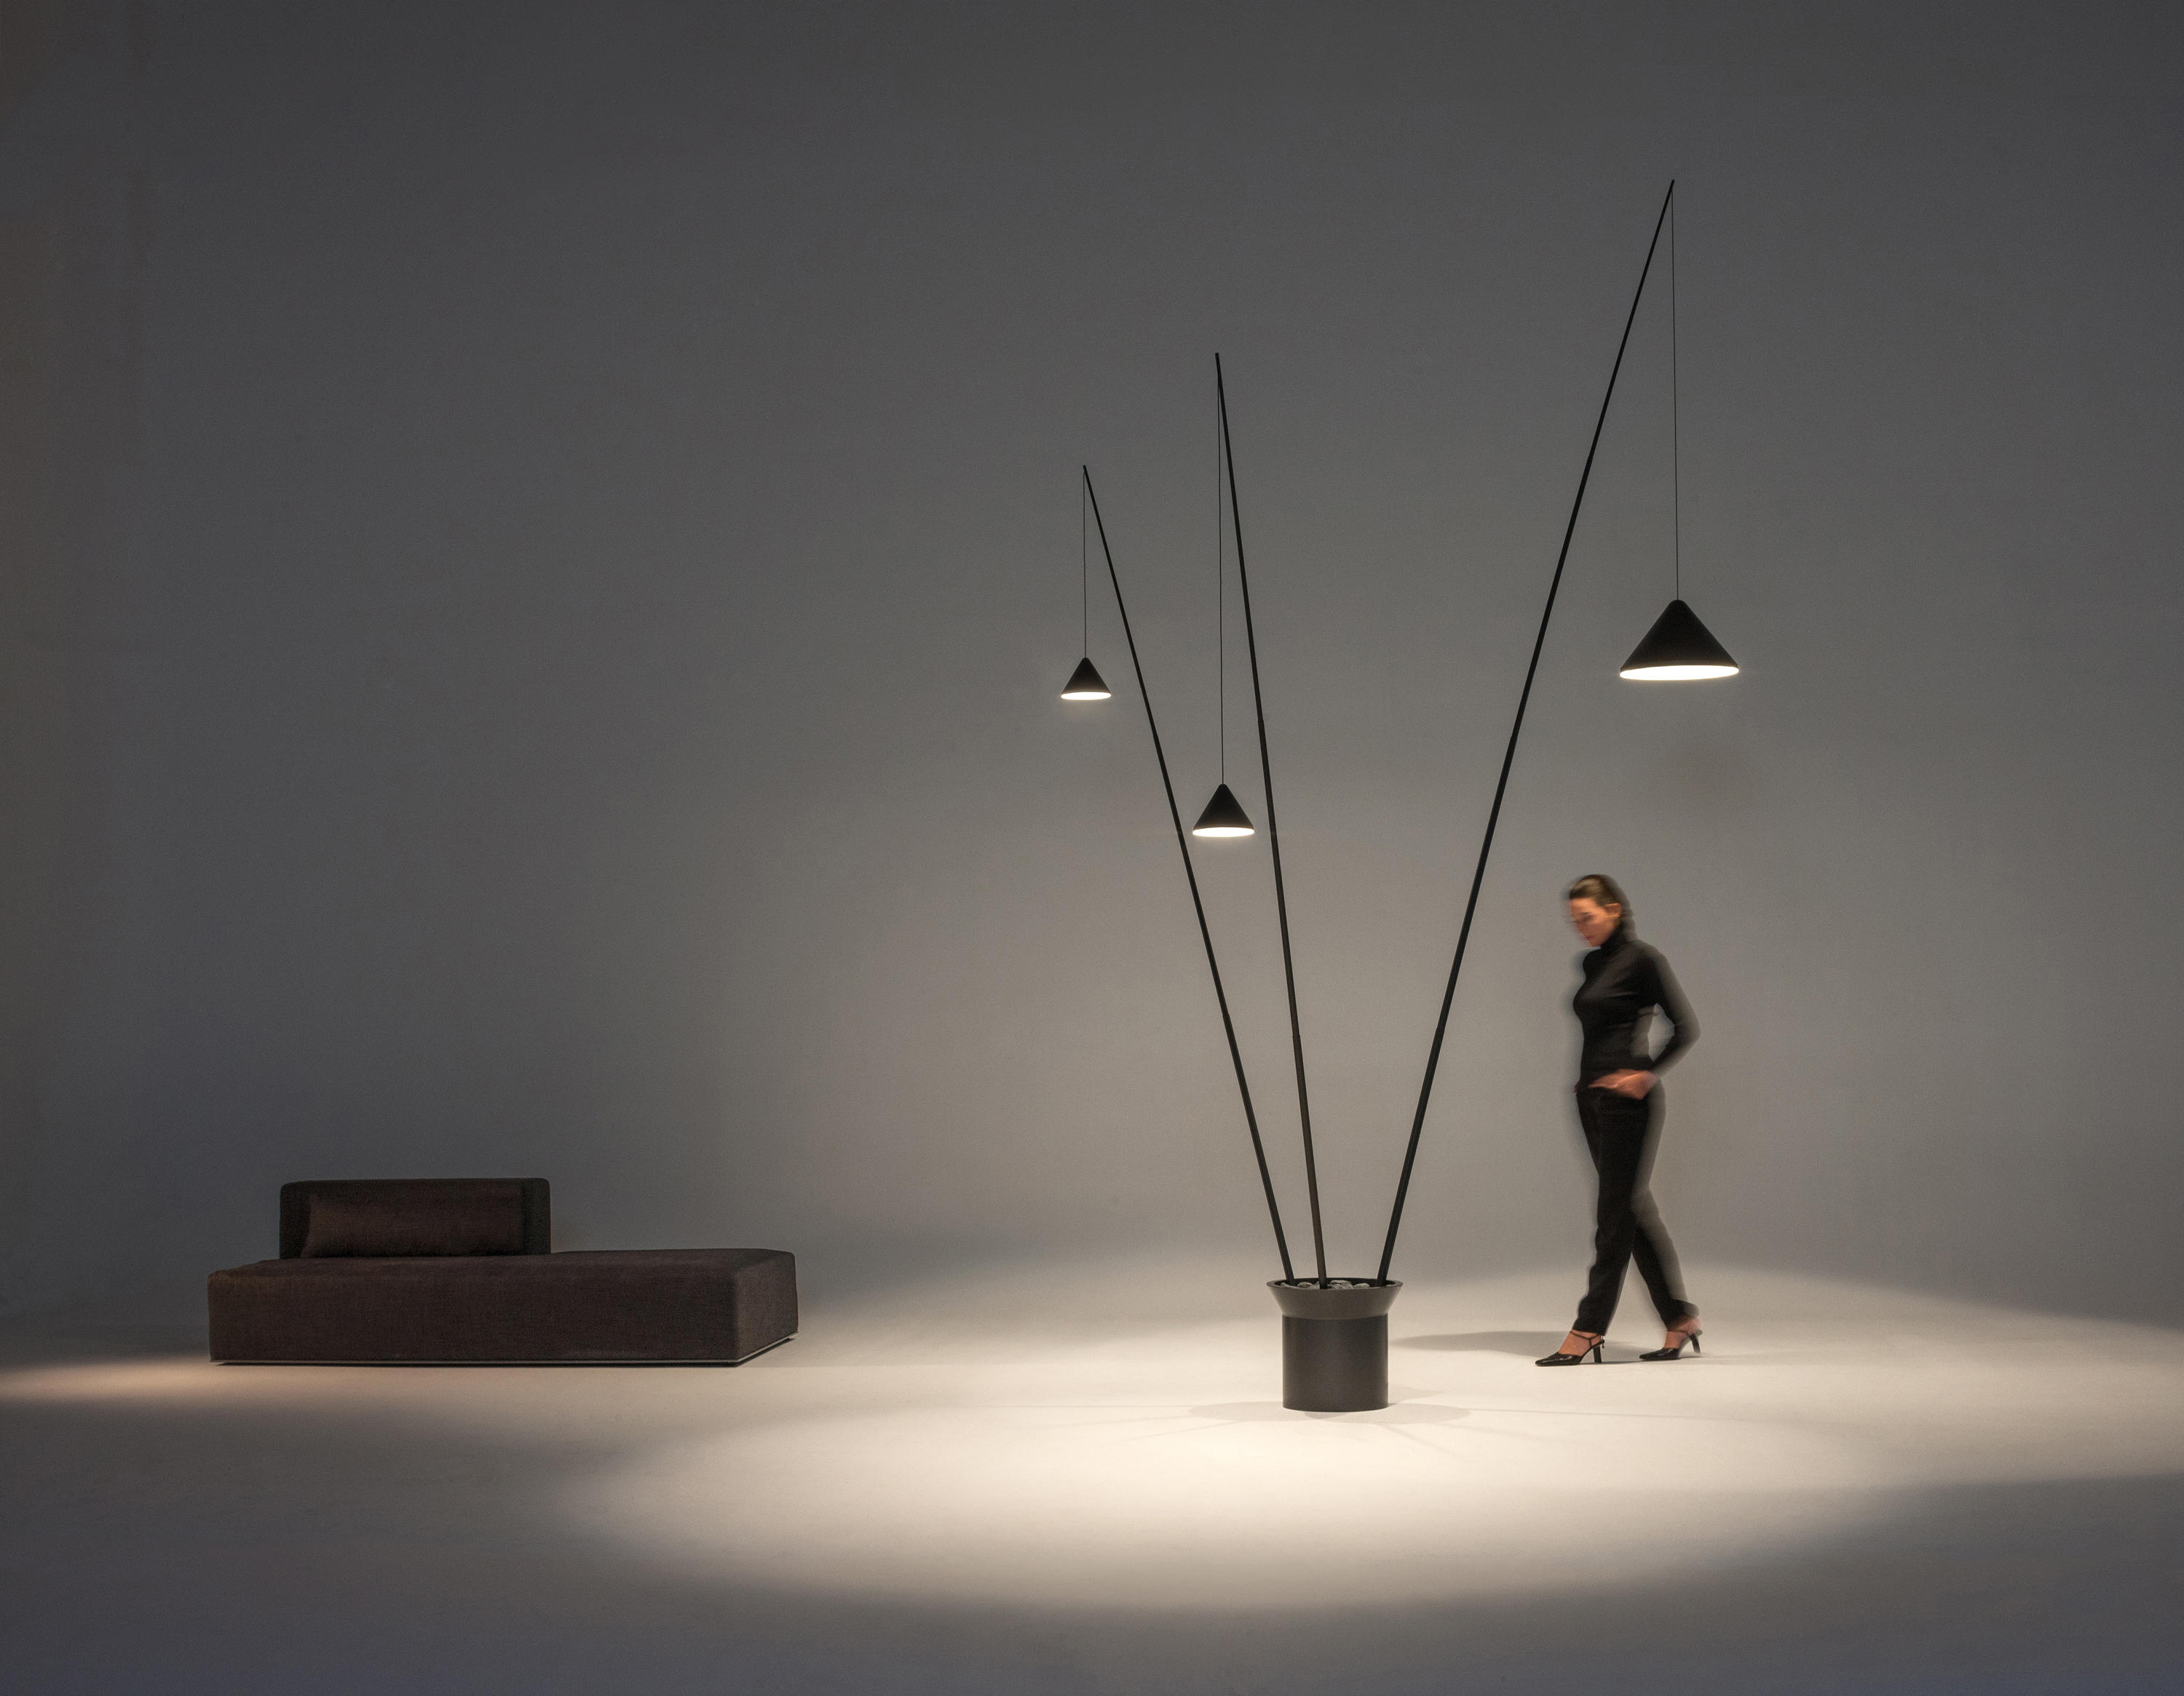 north pendant lamp general lighting from vibia architonic. Black Bedroom Furniture Sets. Home Design Ideas